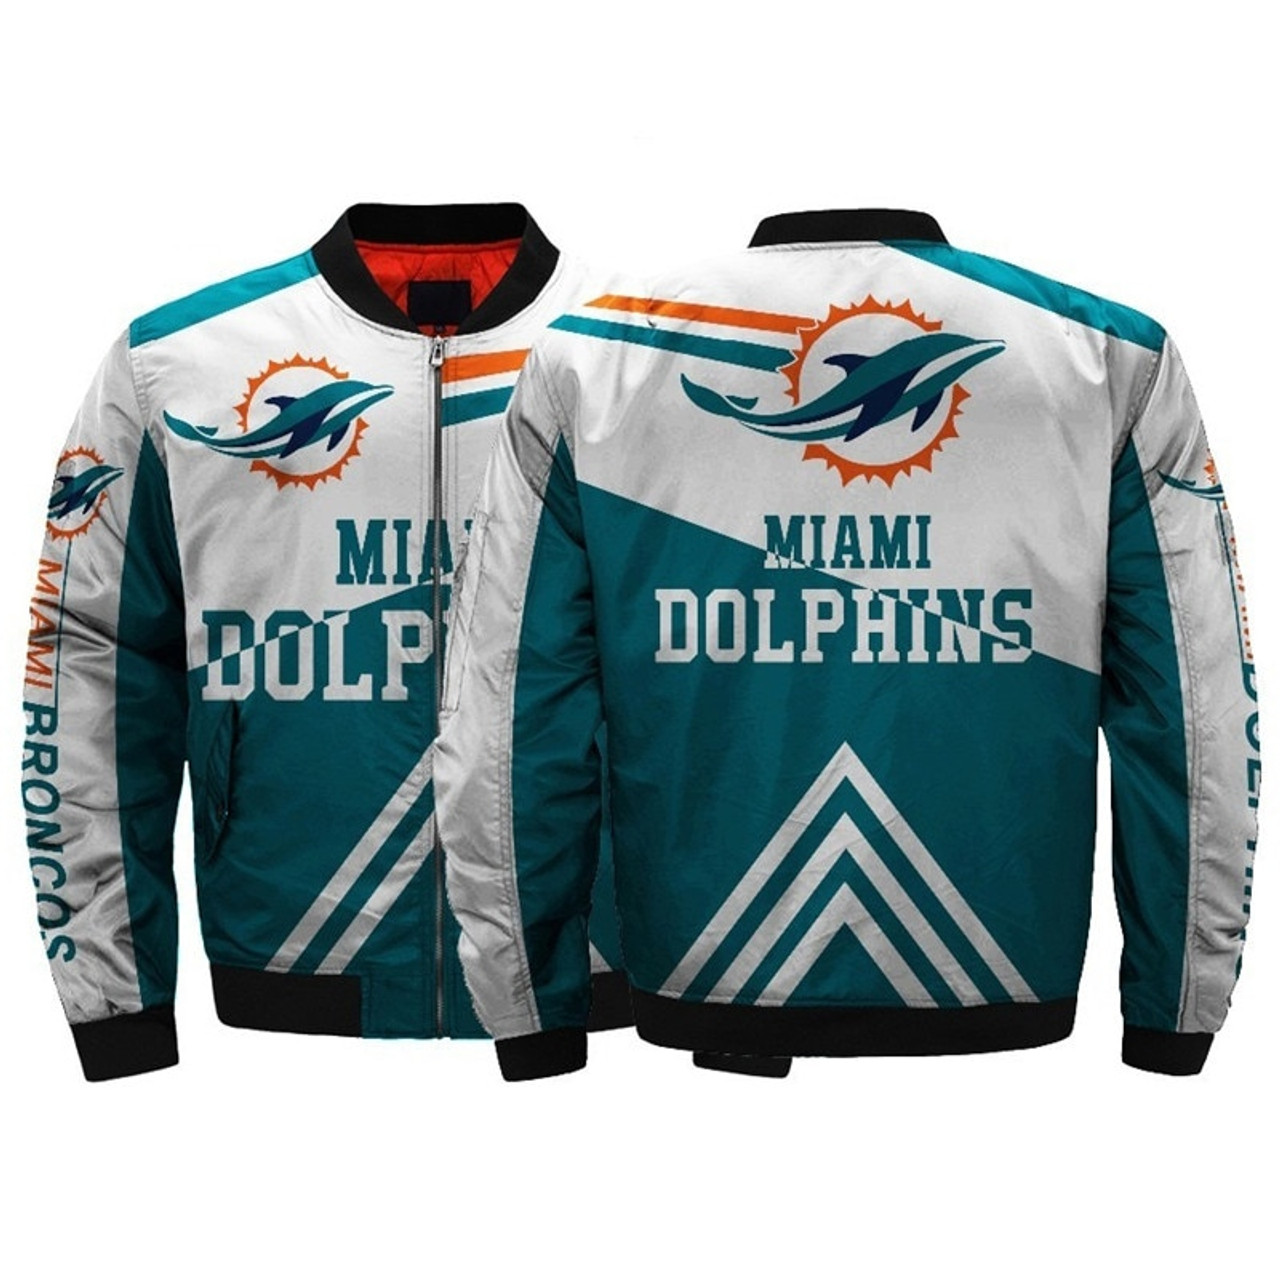 quality design 21d97 0298f **(OFFICIALLY-LICENSED-N.F.L.MIAMI-DOLPHINS/CLASSIC-DOLPHINS-OFFICIAL-TEAM-COLORS  & OFFICIAL-DOLPHINS-LOGOS,CLASSIC-BOMBER/MA-1 FLIGHT-JACKET & ...